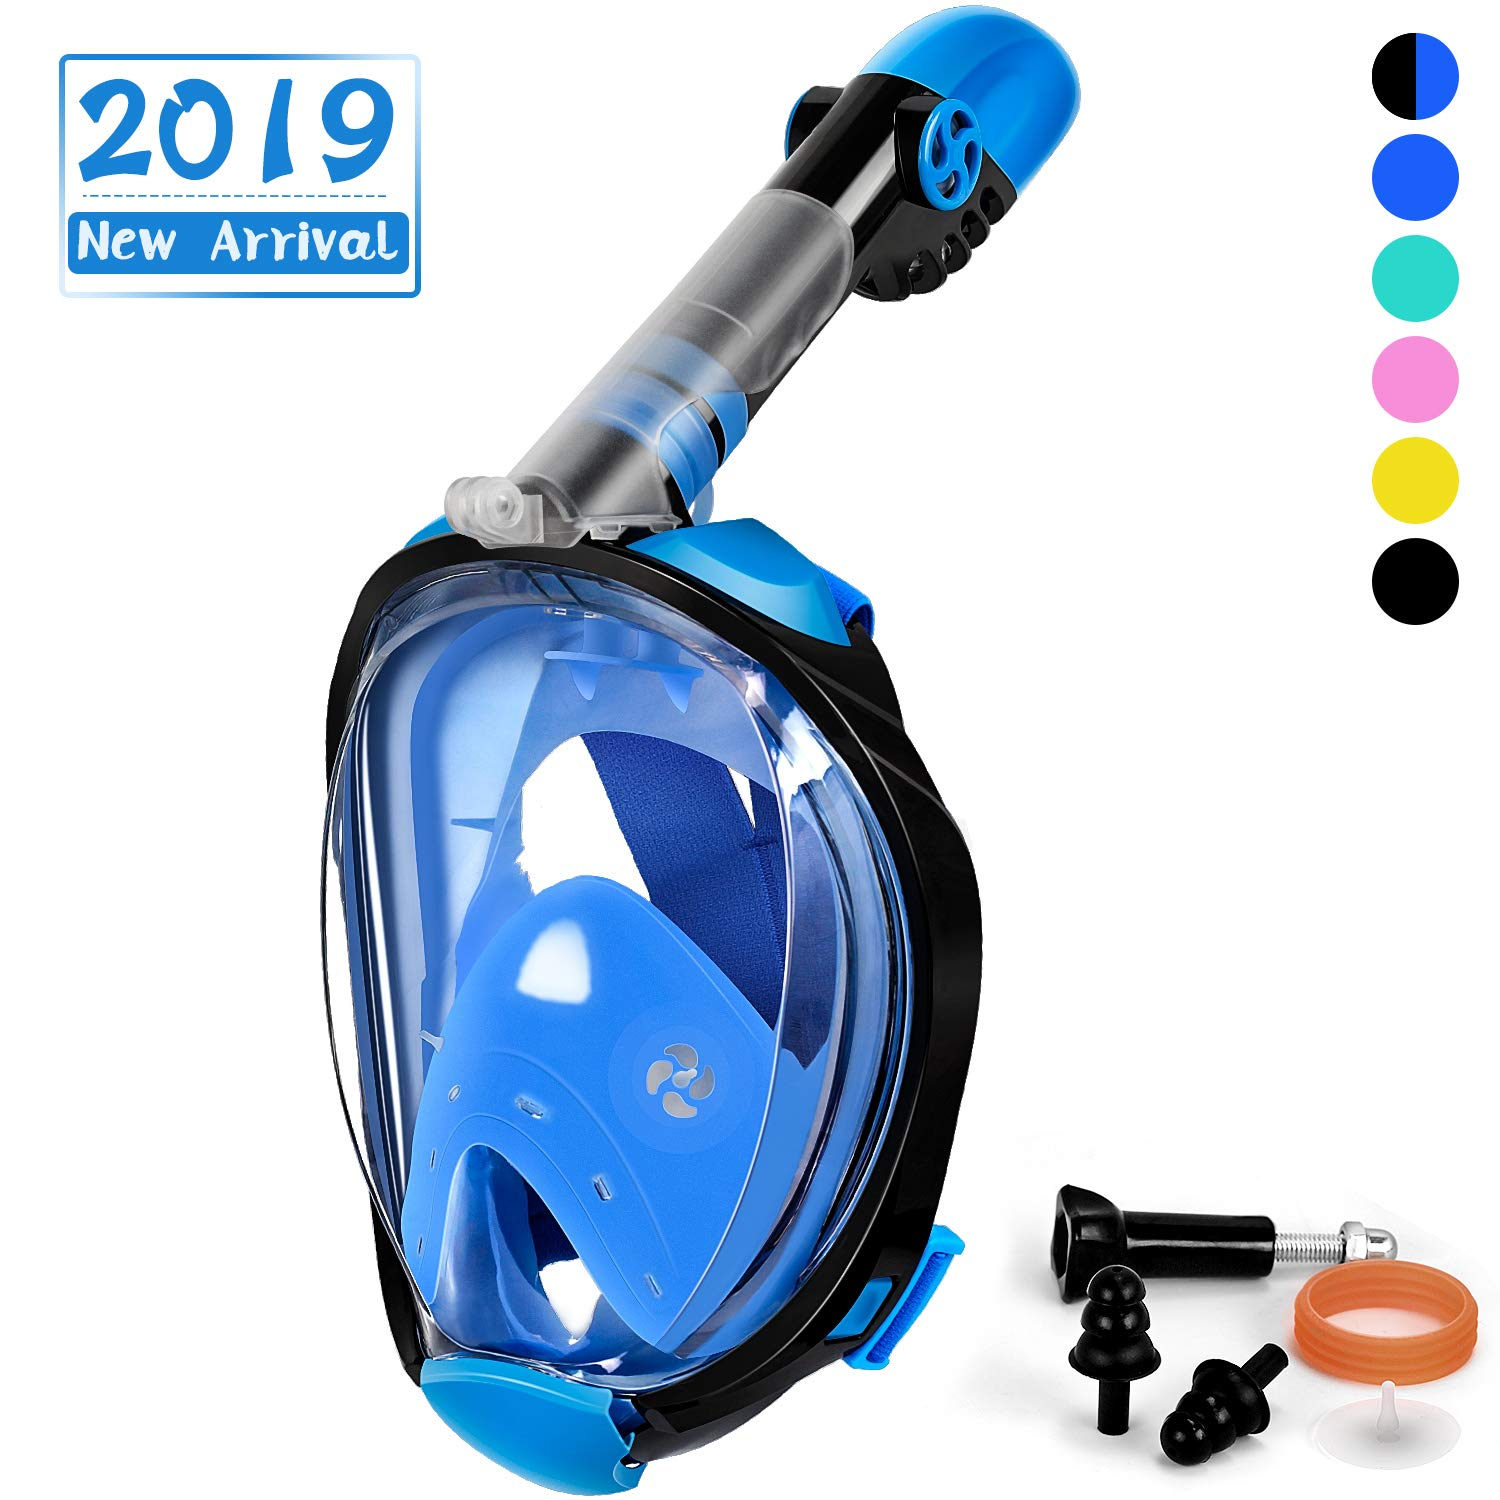 OUSPT Full Face Snorkel Mask, Snorkeling Mask with Detachable Camera Mount, Panoramic 180° View Upgraded Dive Mask with Newest Breathing System, Dry Top Set Anti-Fog Anti-Leak (Blue, L/XL) by OUSPT